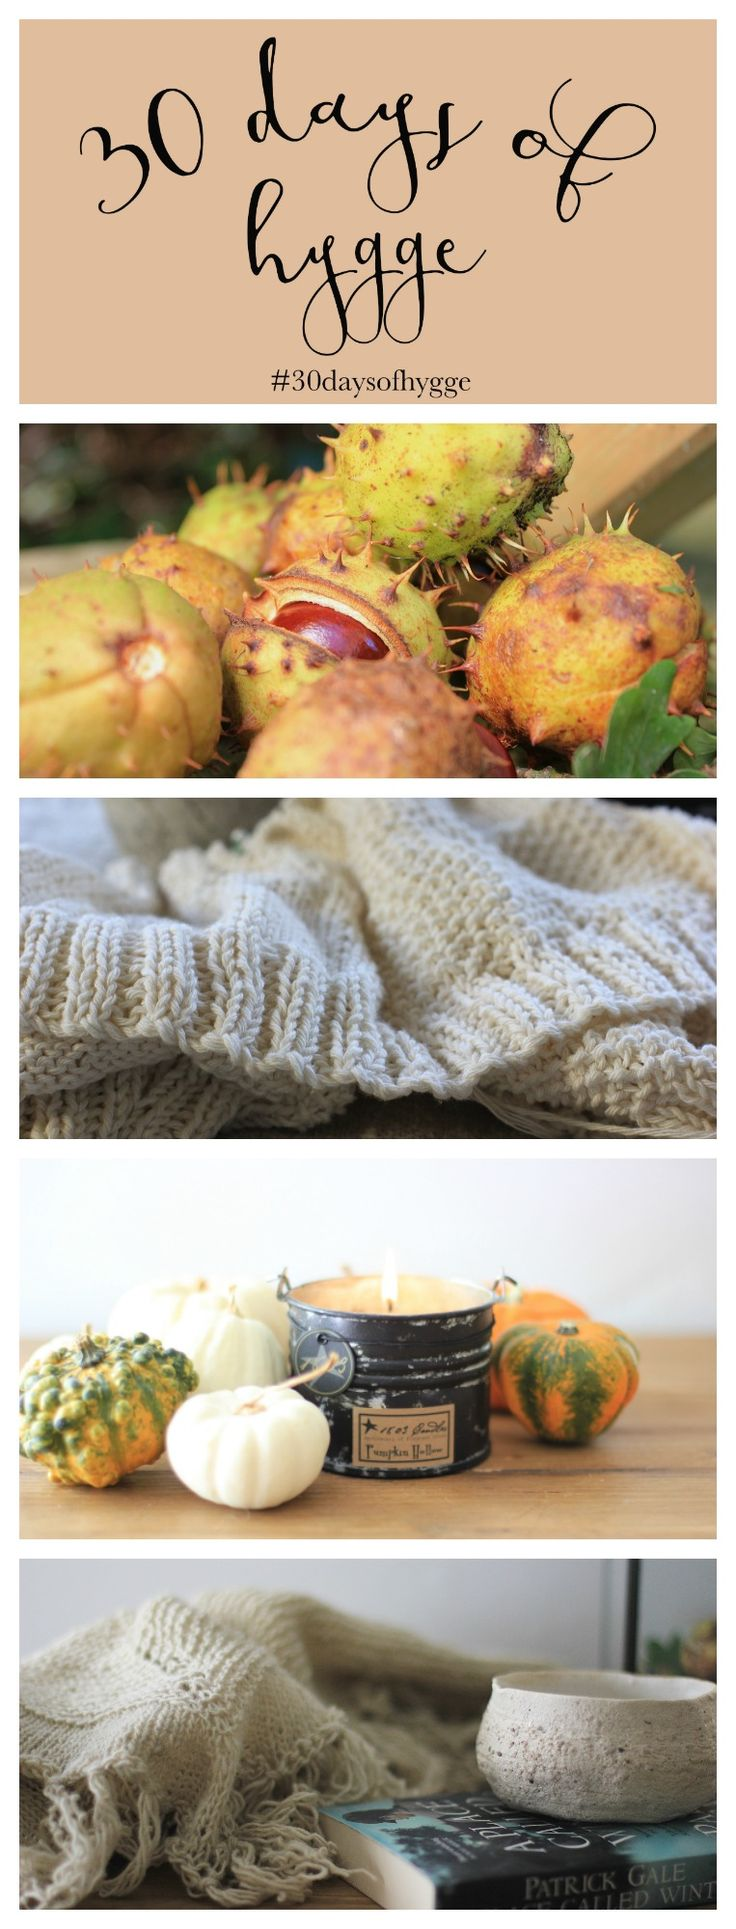 ideas for a 30 day hygge challenge this autumn